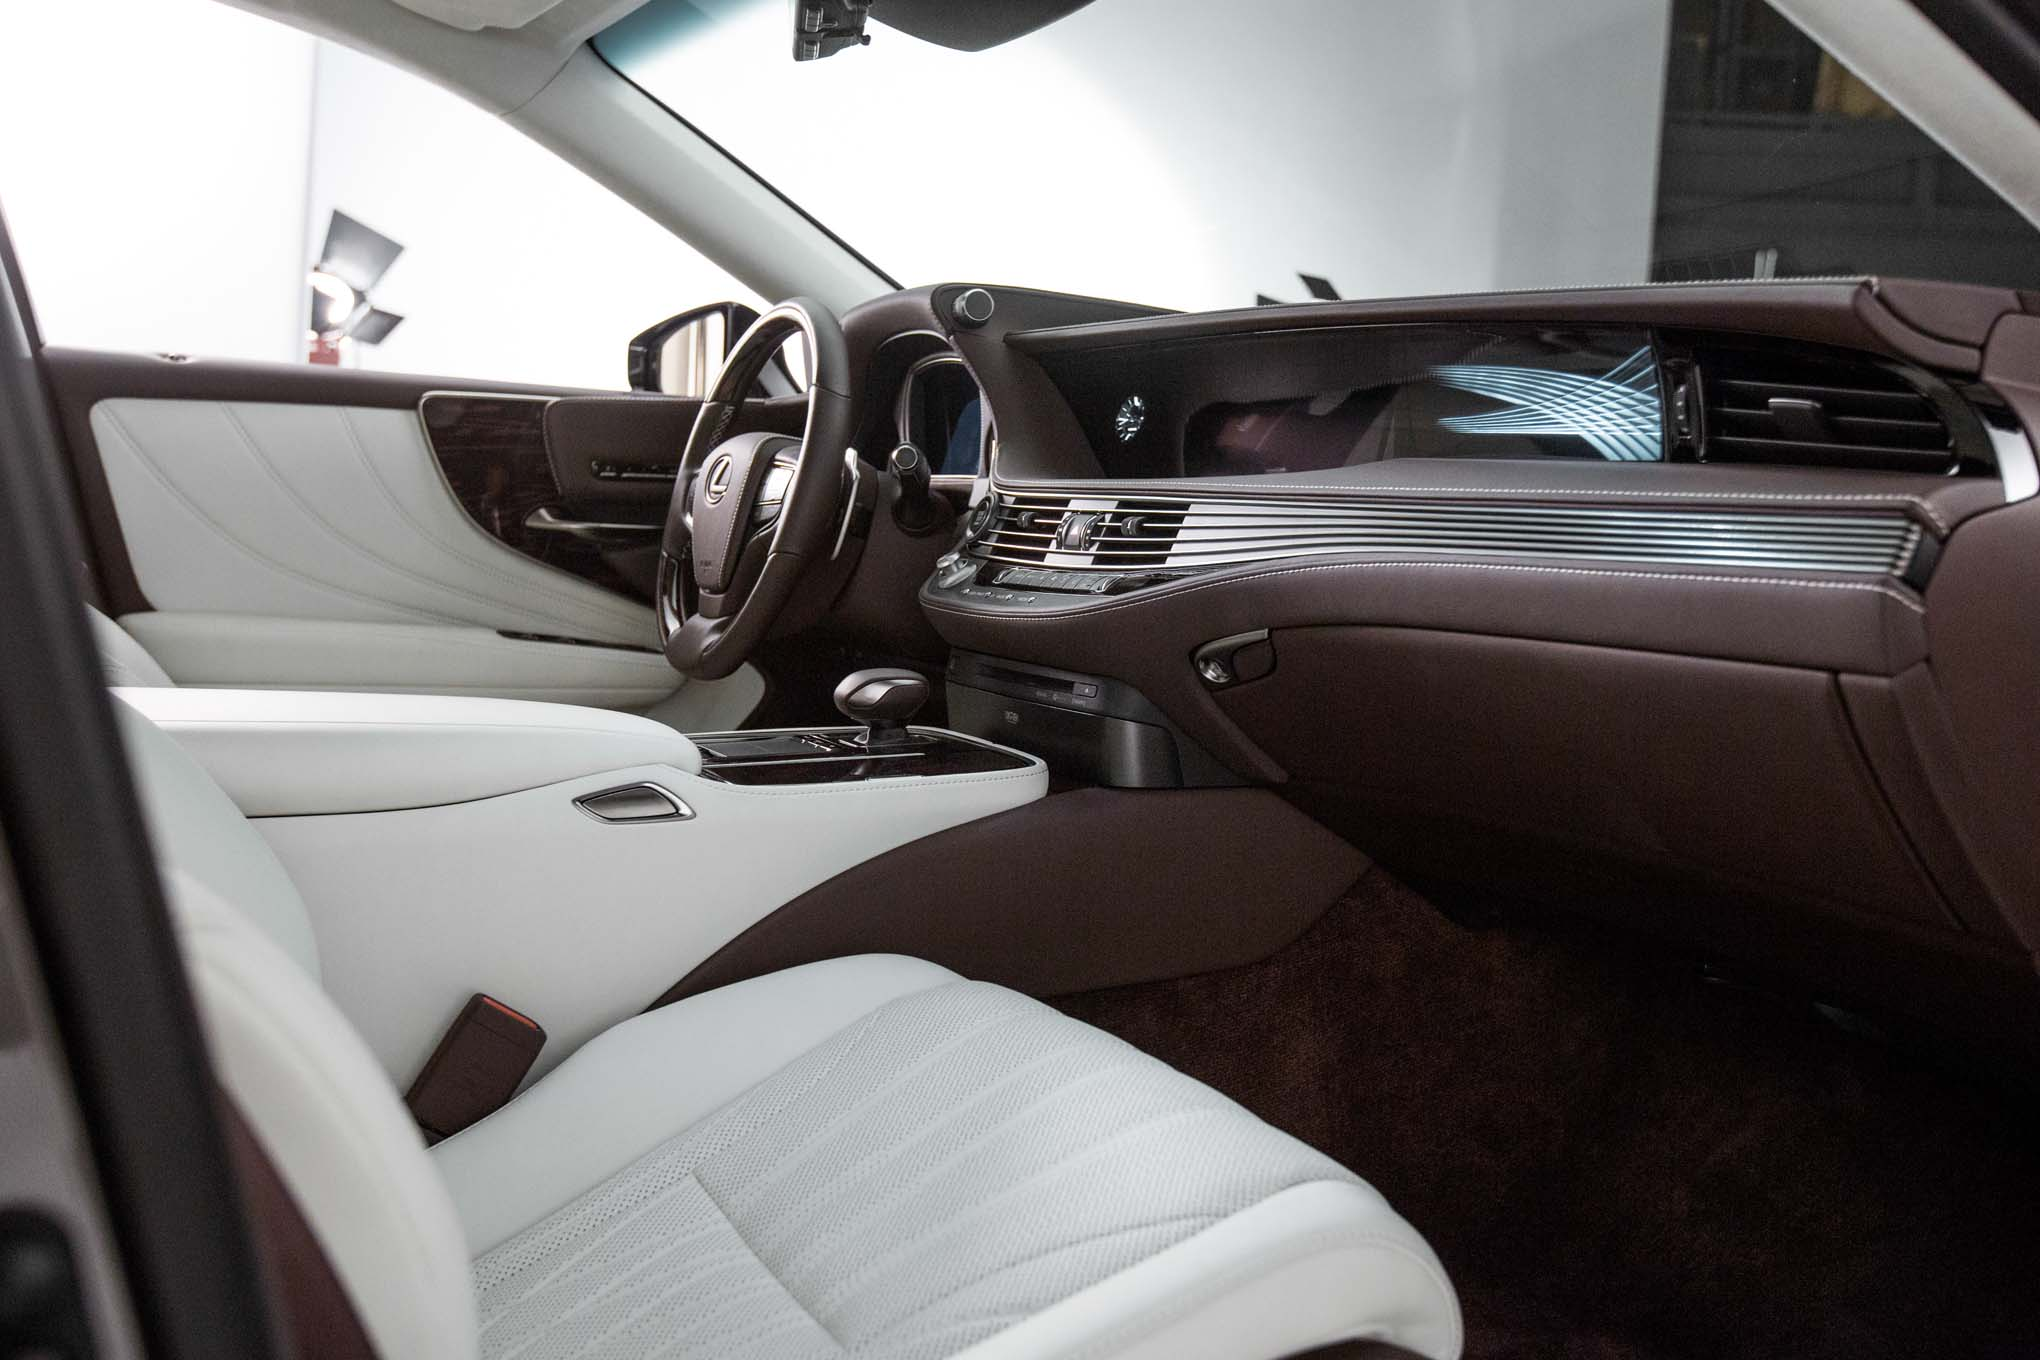 https://st.automobilemag.com/uploads/sites/11/2017/01/2018-Lexus-LS-500-interior-view.jpg